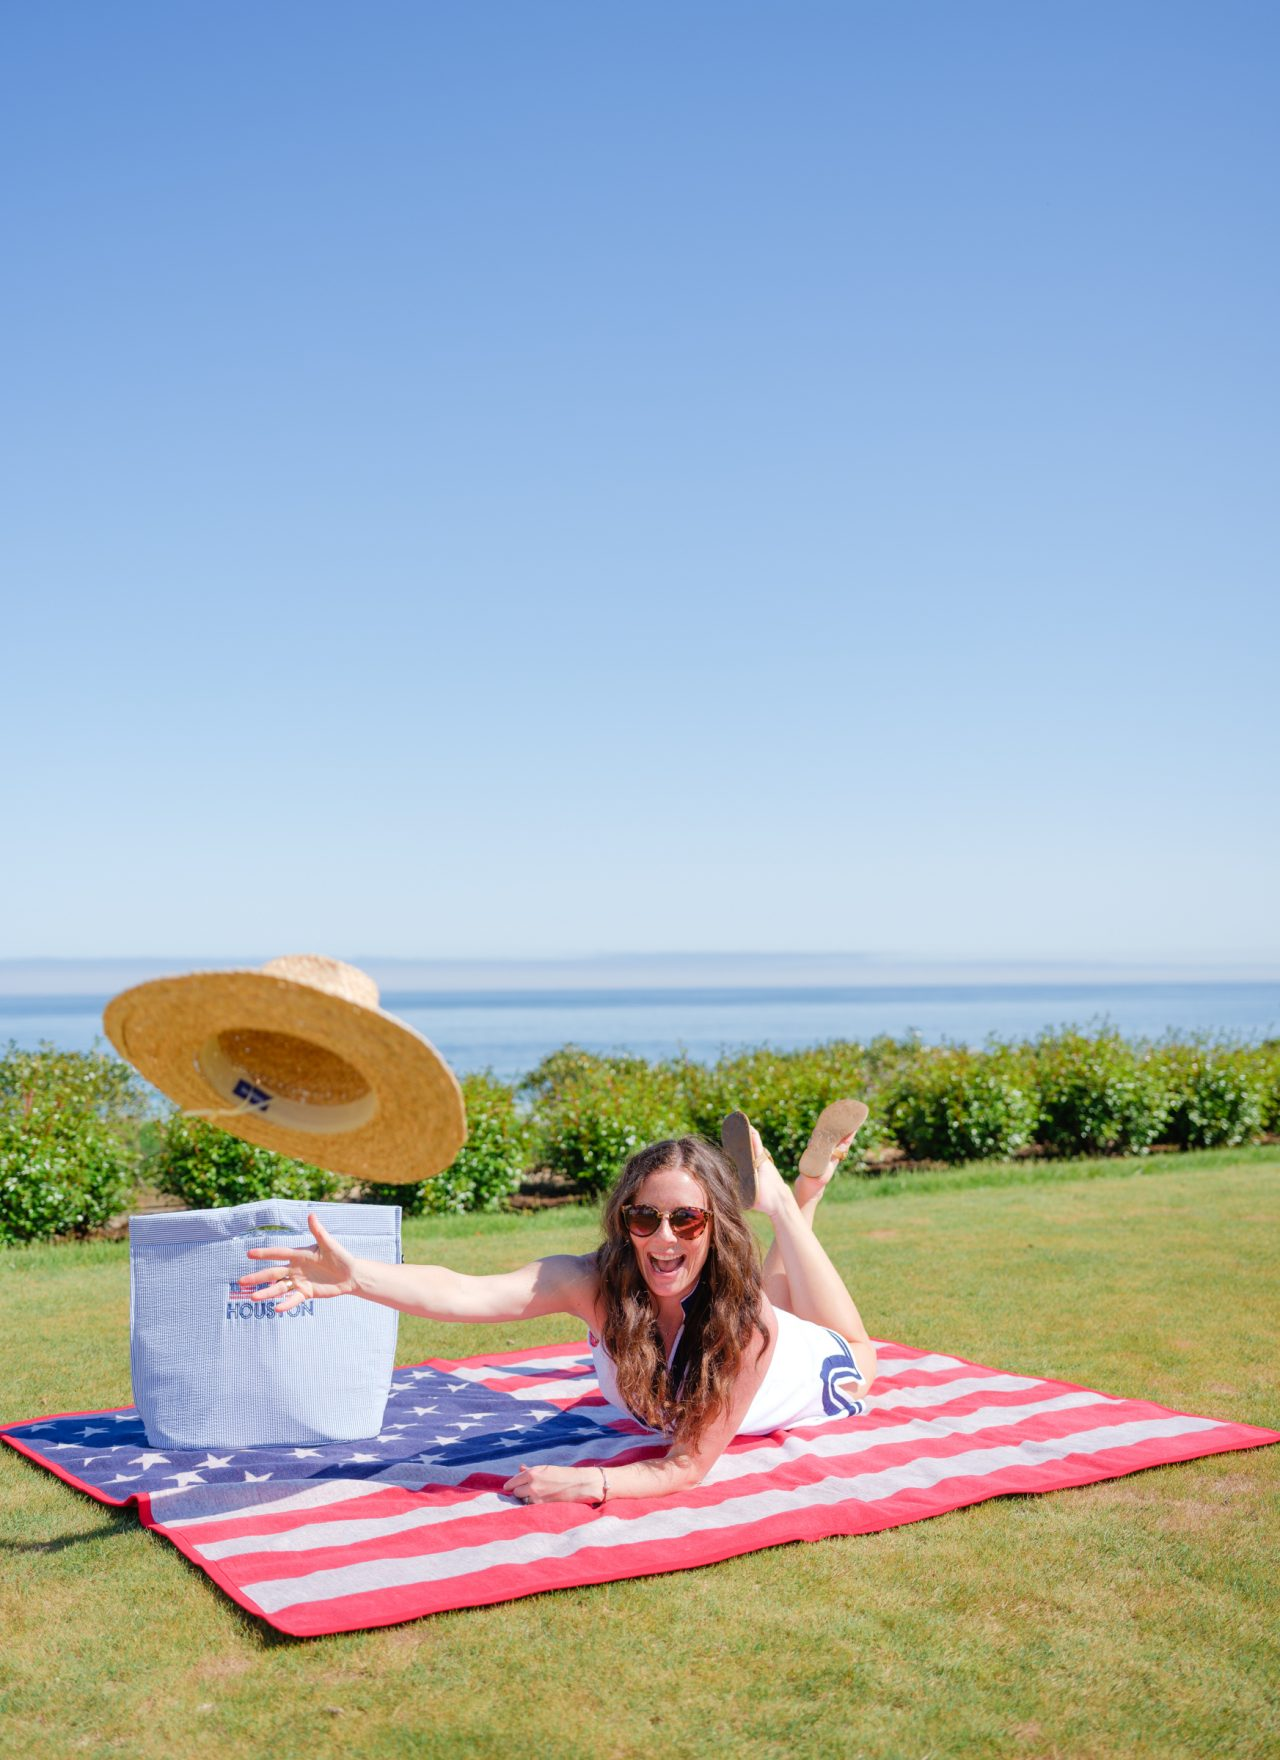 woman catching hat on american flag blanket